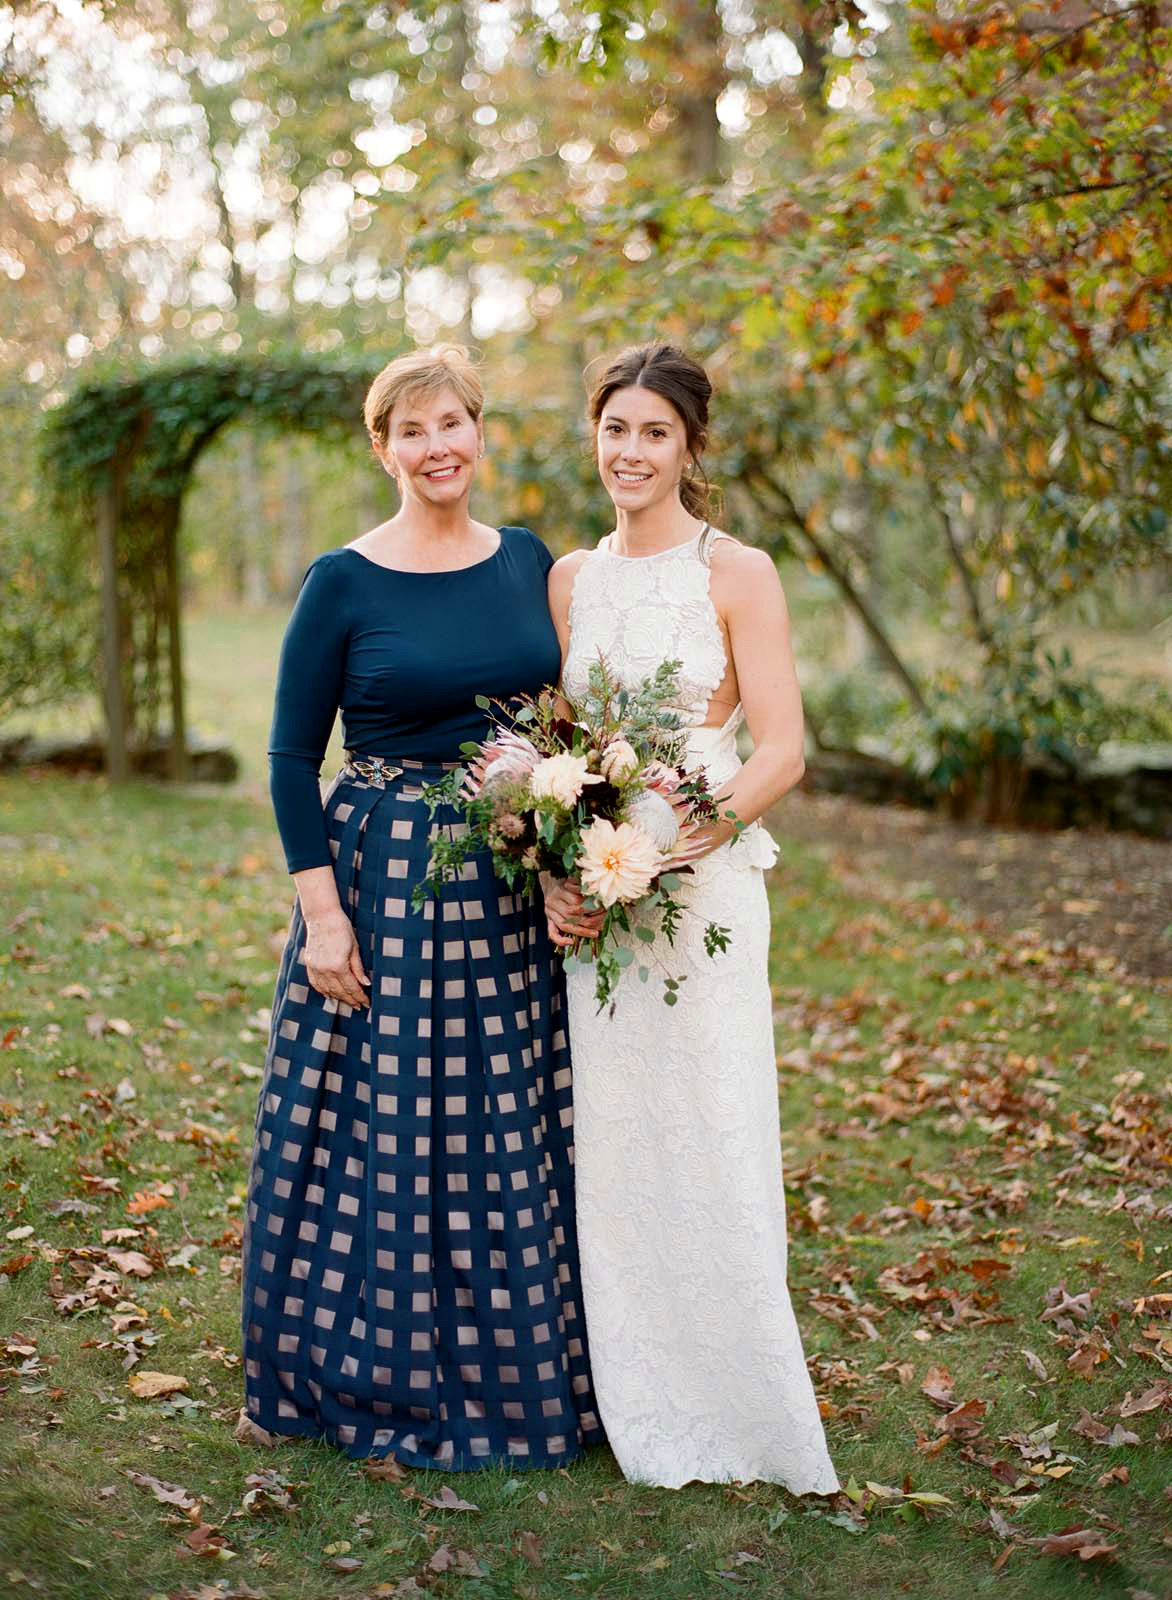 Our Favorite Mother Of The Bride And Groom Dresses For A